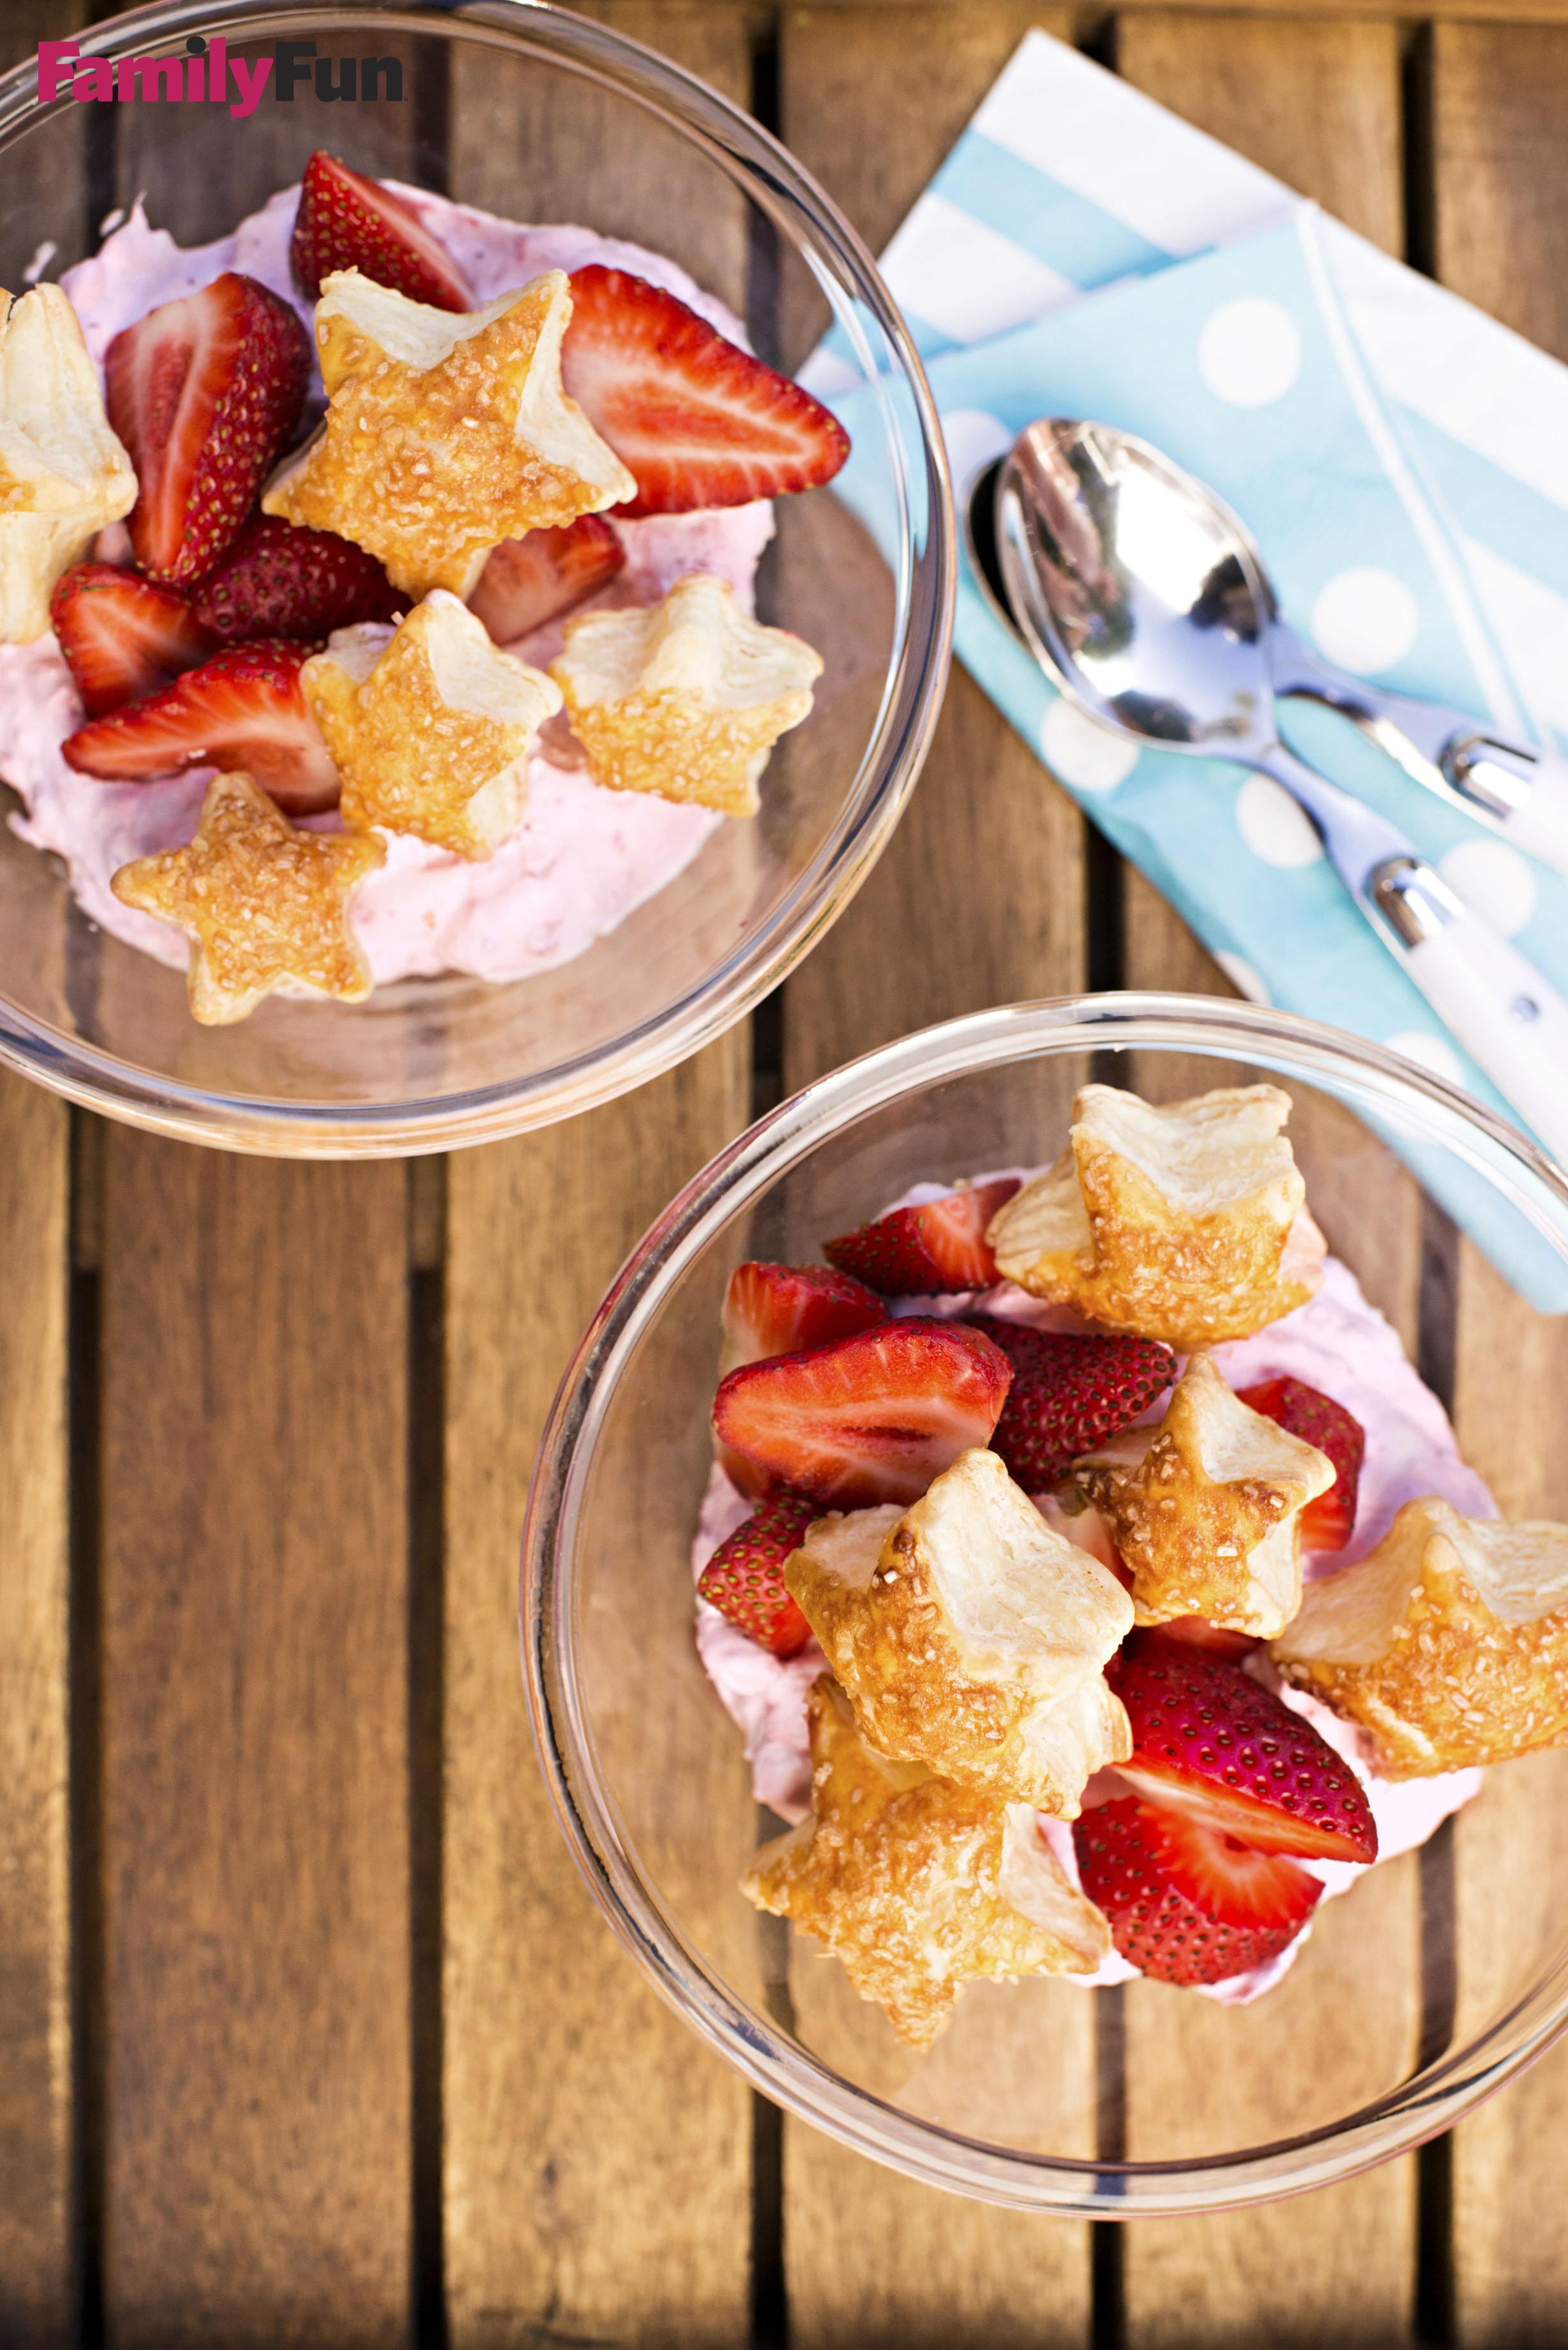 Sparkling Pastry Stars with Strawberry Whipped Cream